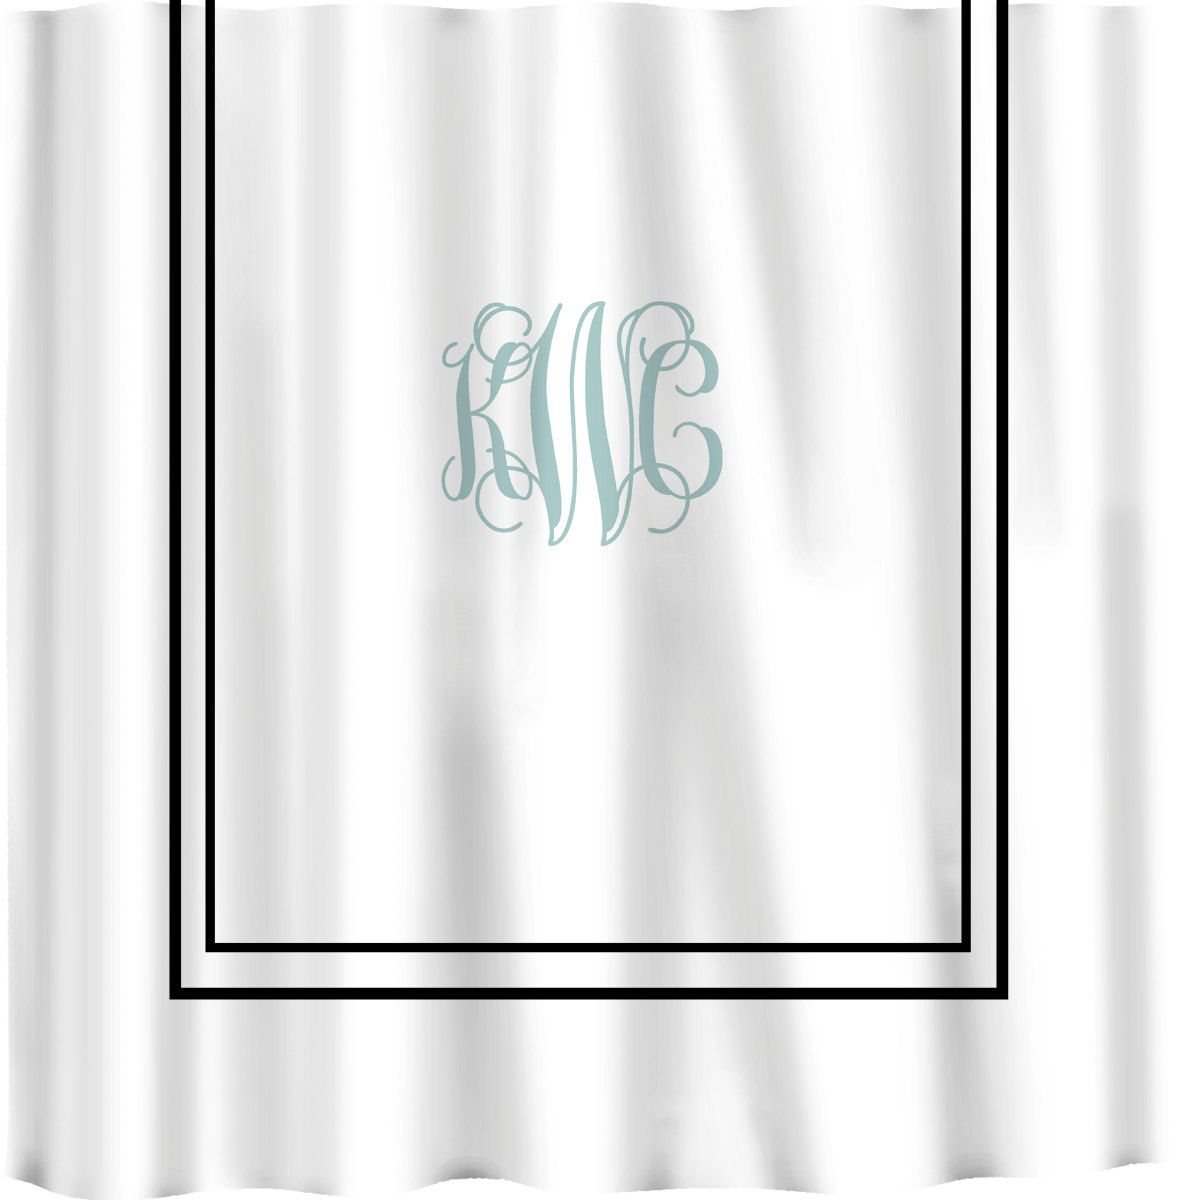 Custom Shower Curtain Simplicity In White Or Bottom Band Solid With Monogram Your Colors